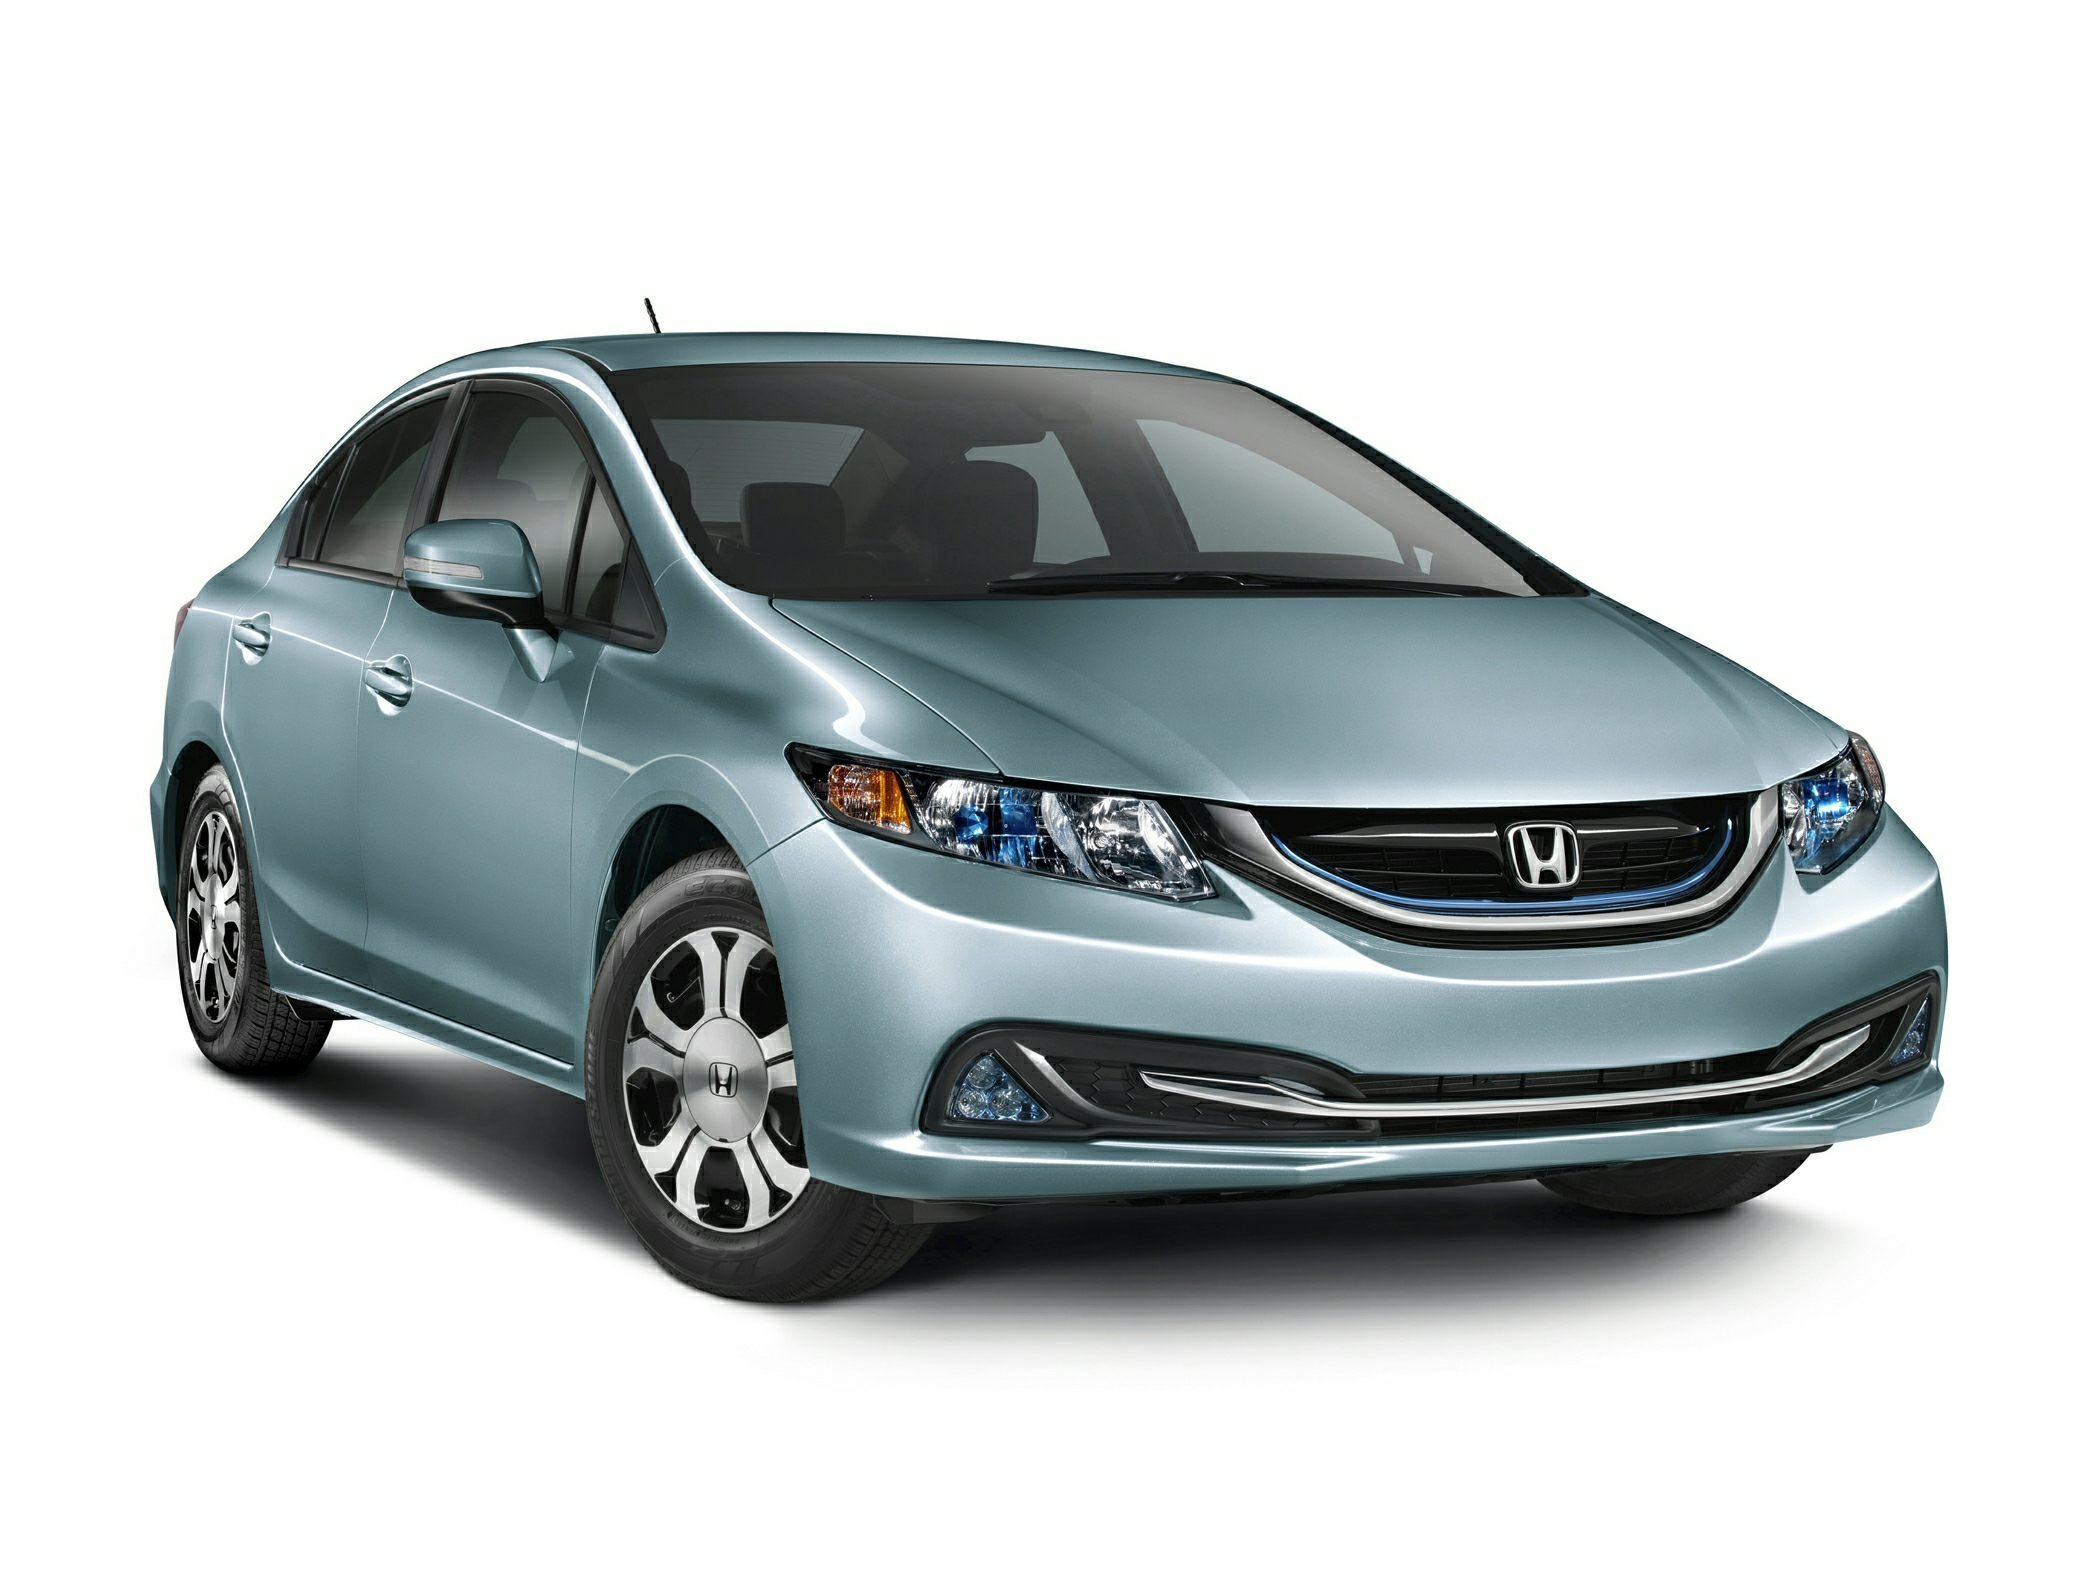 New 2015 Honda Civic Hybrid Price Photos Reviews Features On This Month